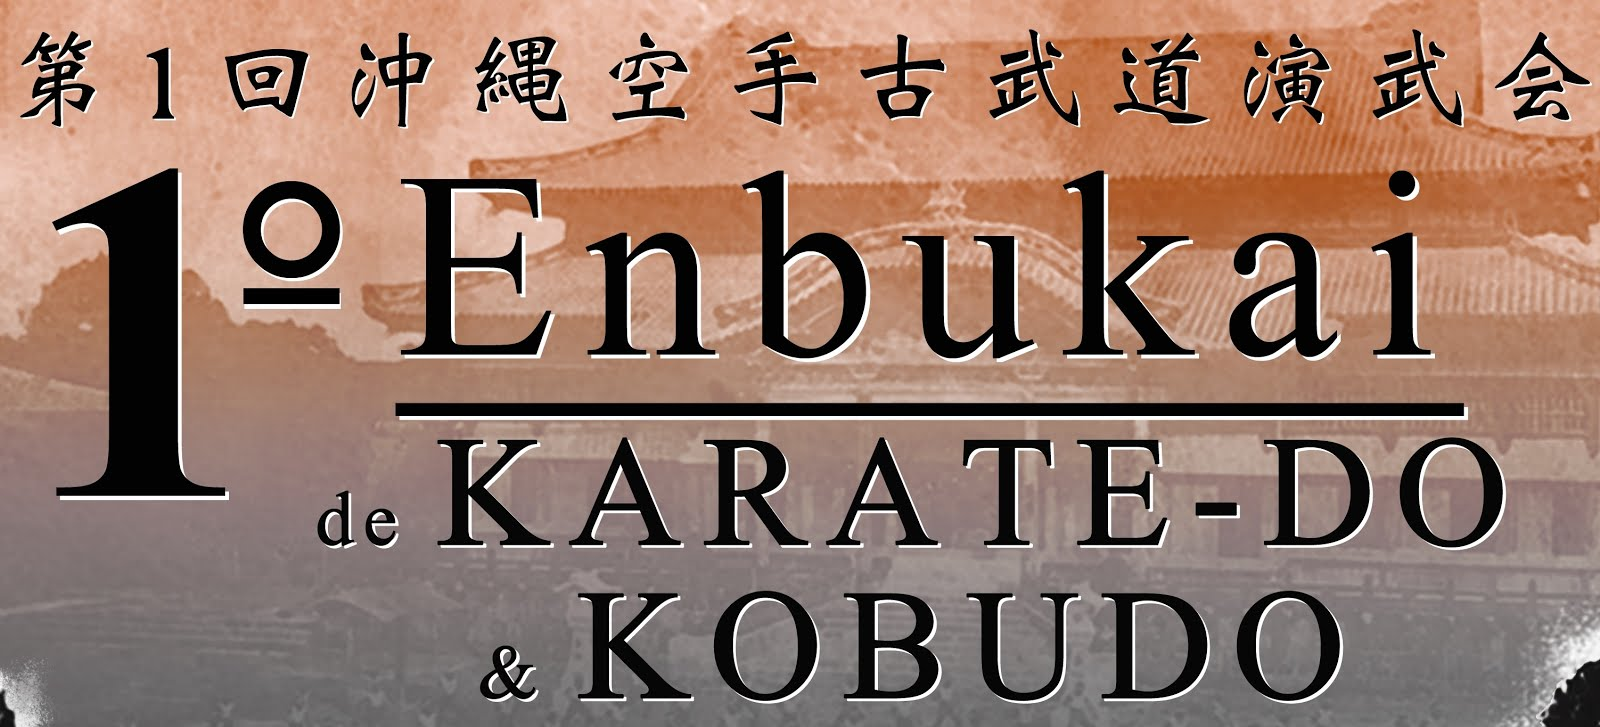 1º ENBUKAI de KARATE-DO & KOBUDO